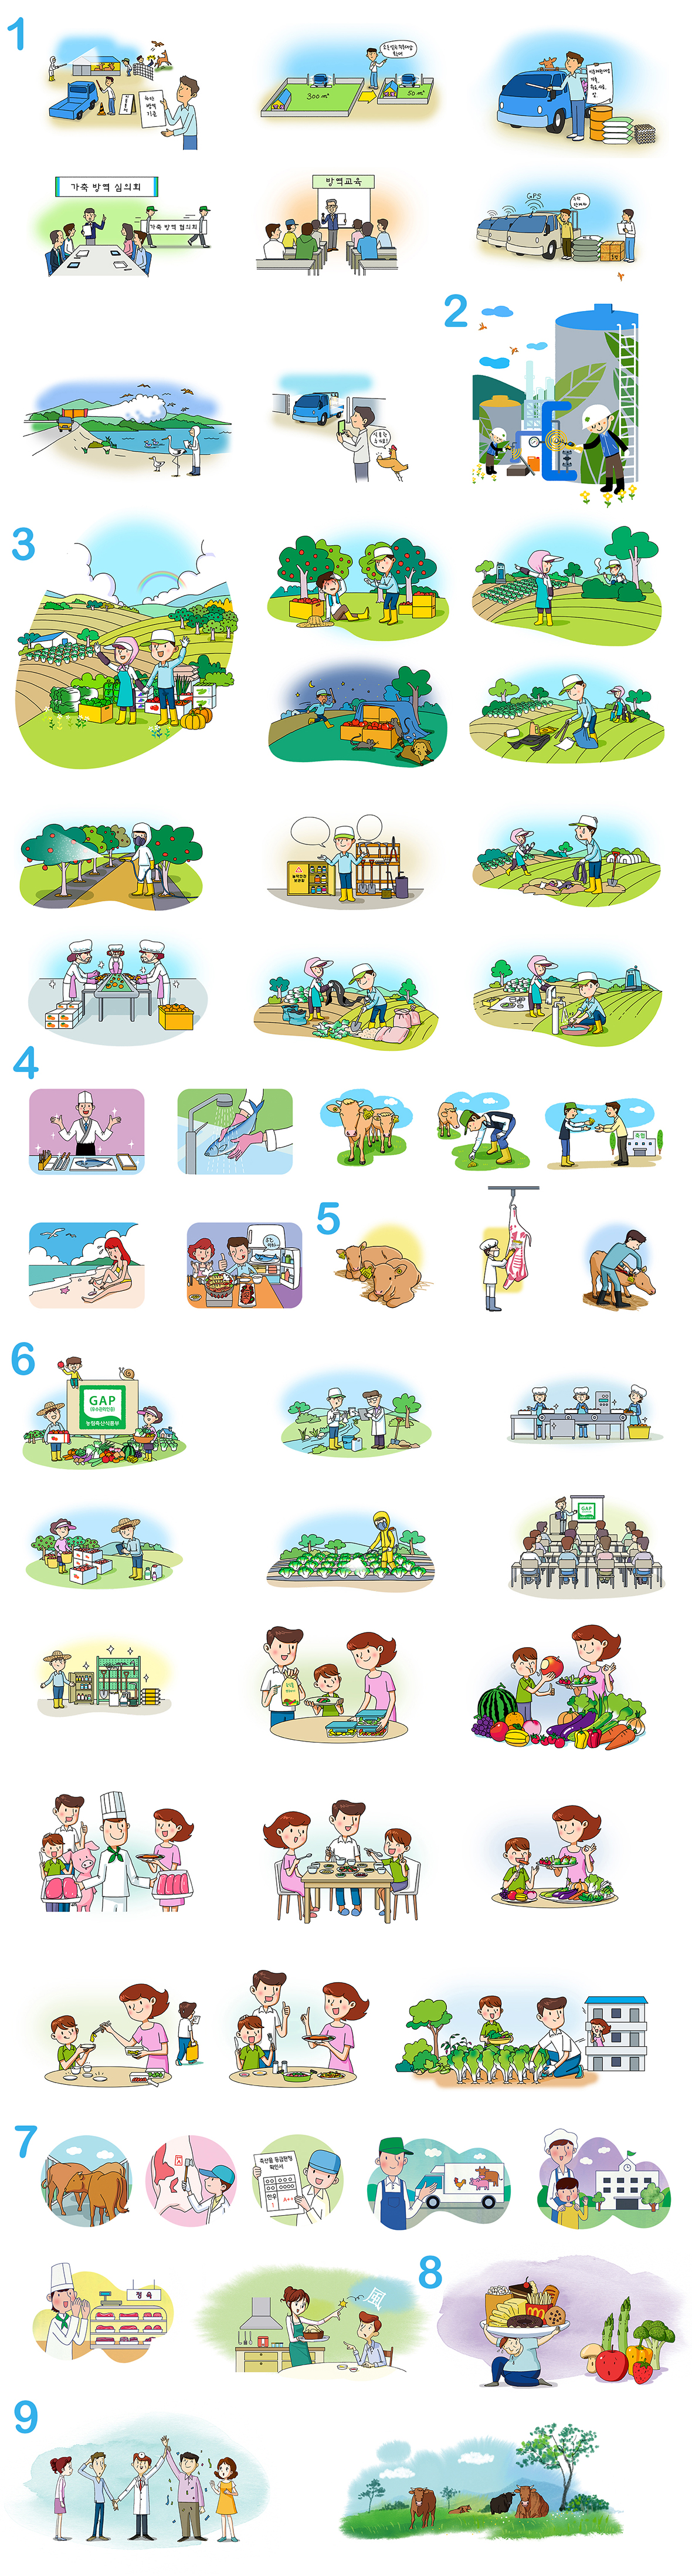 illustman-080_Various style illustration-01